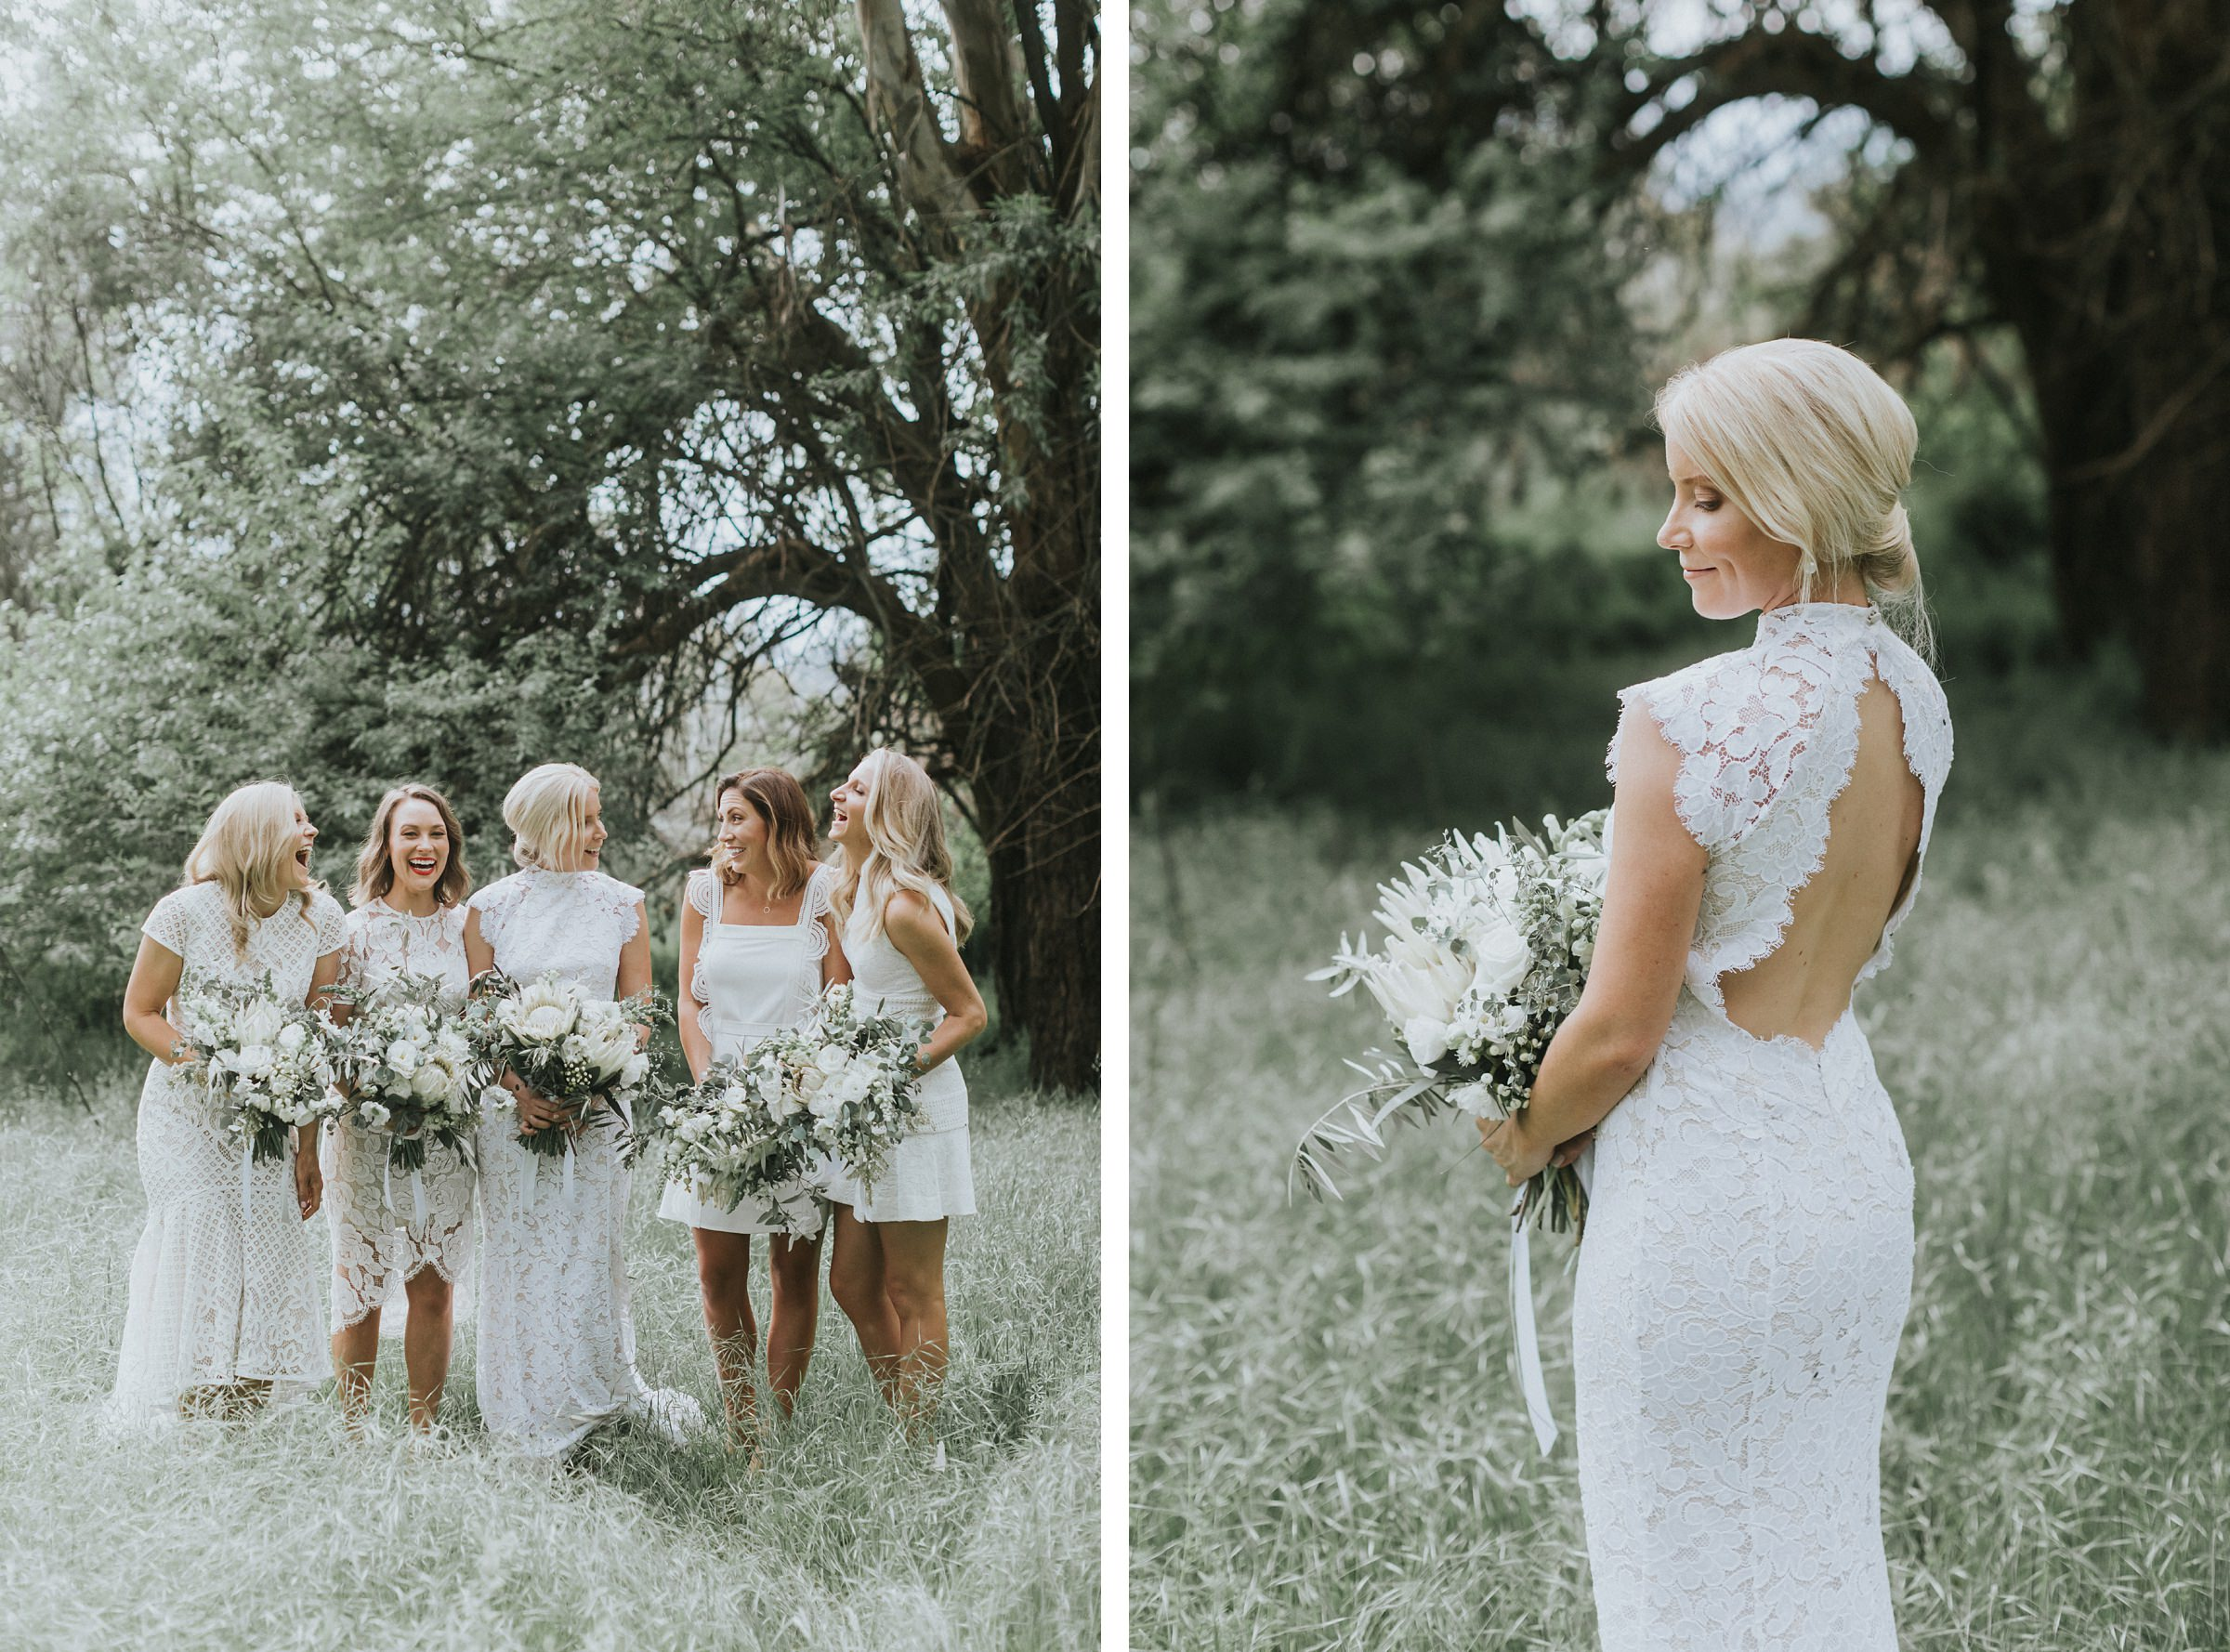 beautiful portraits of bride and her bridesmaids in nimbo